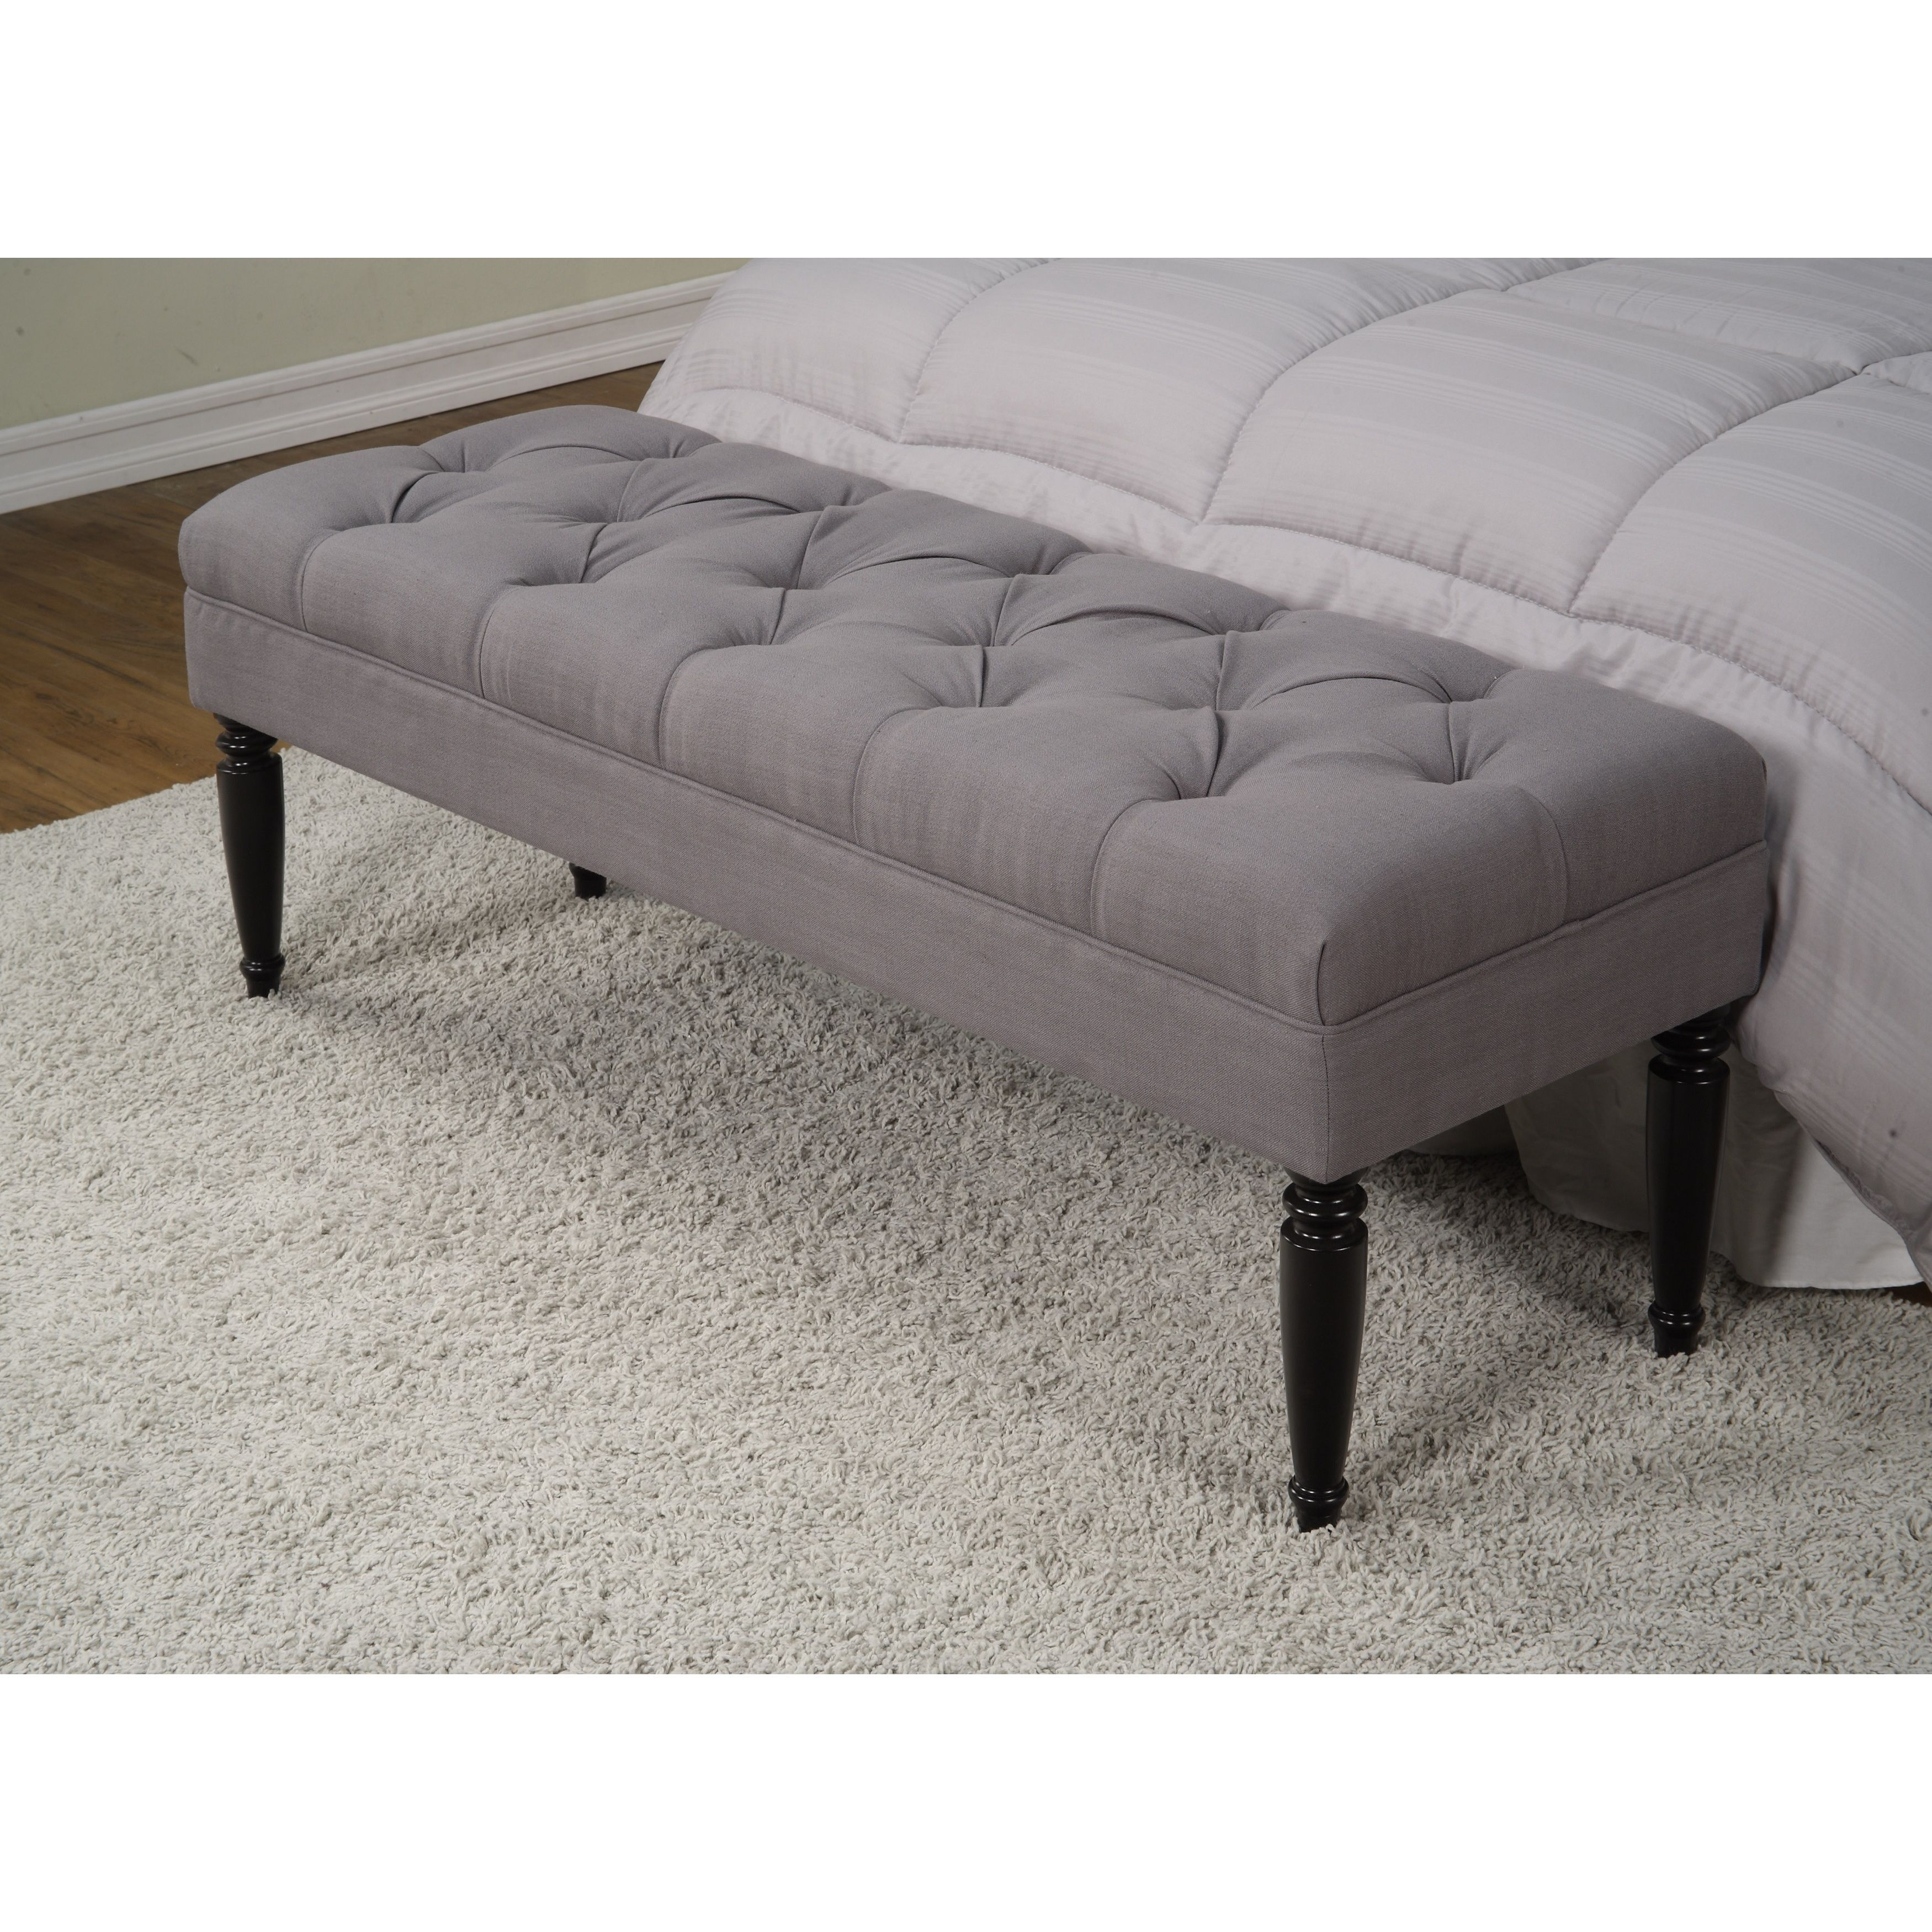 crystal size alder riley grey gray tufted leather ottoman bench with of flip clay home storage top shoe full